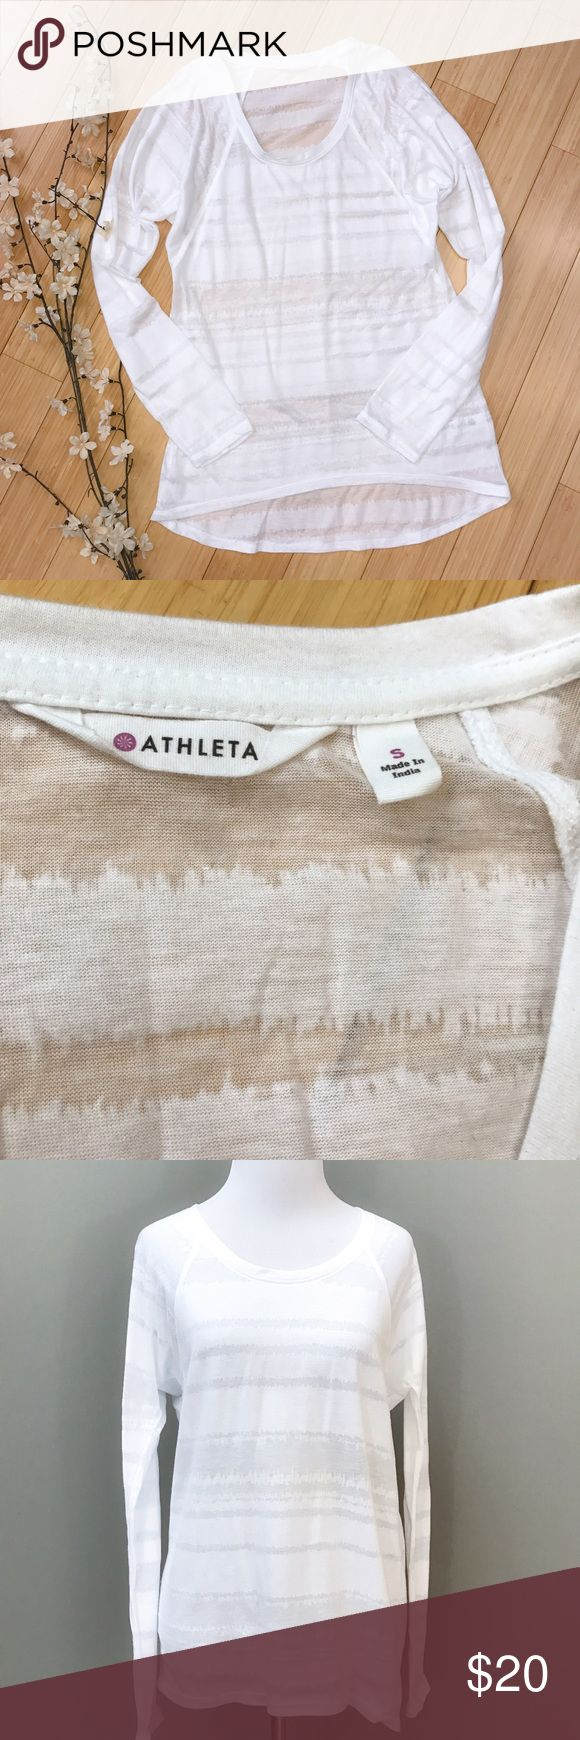 ATHLETA white shirt, S. Really nice white shirt by Athleta, size small. The shirt is sheer and is meant to go over a cami, a brightly colored sports bra, or a bathing suit. Slight batwing sleeves. Bust is 19 inches, length is 26 inches in the front, 29 inches in the pack. No flaws, great condition. Athleta Tops Tees - Long Sleeve